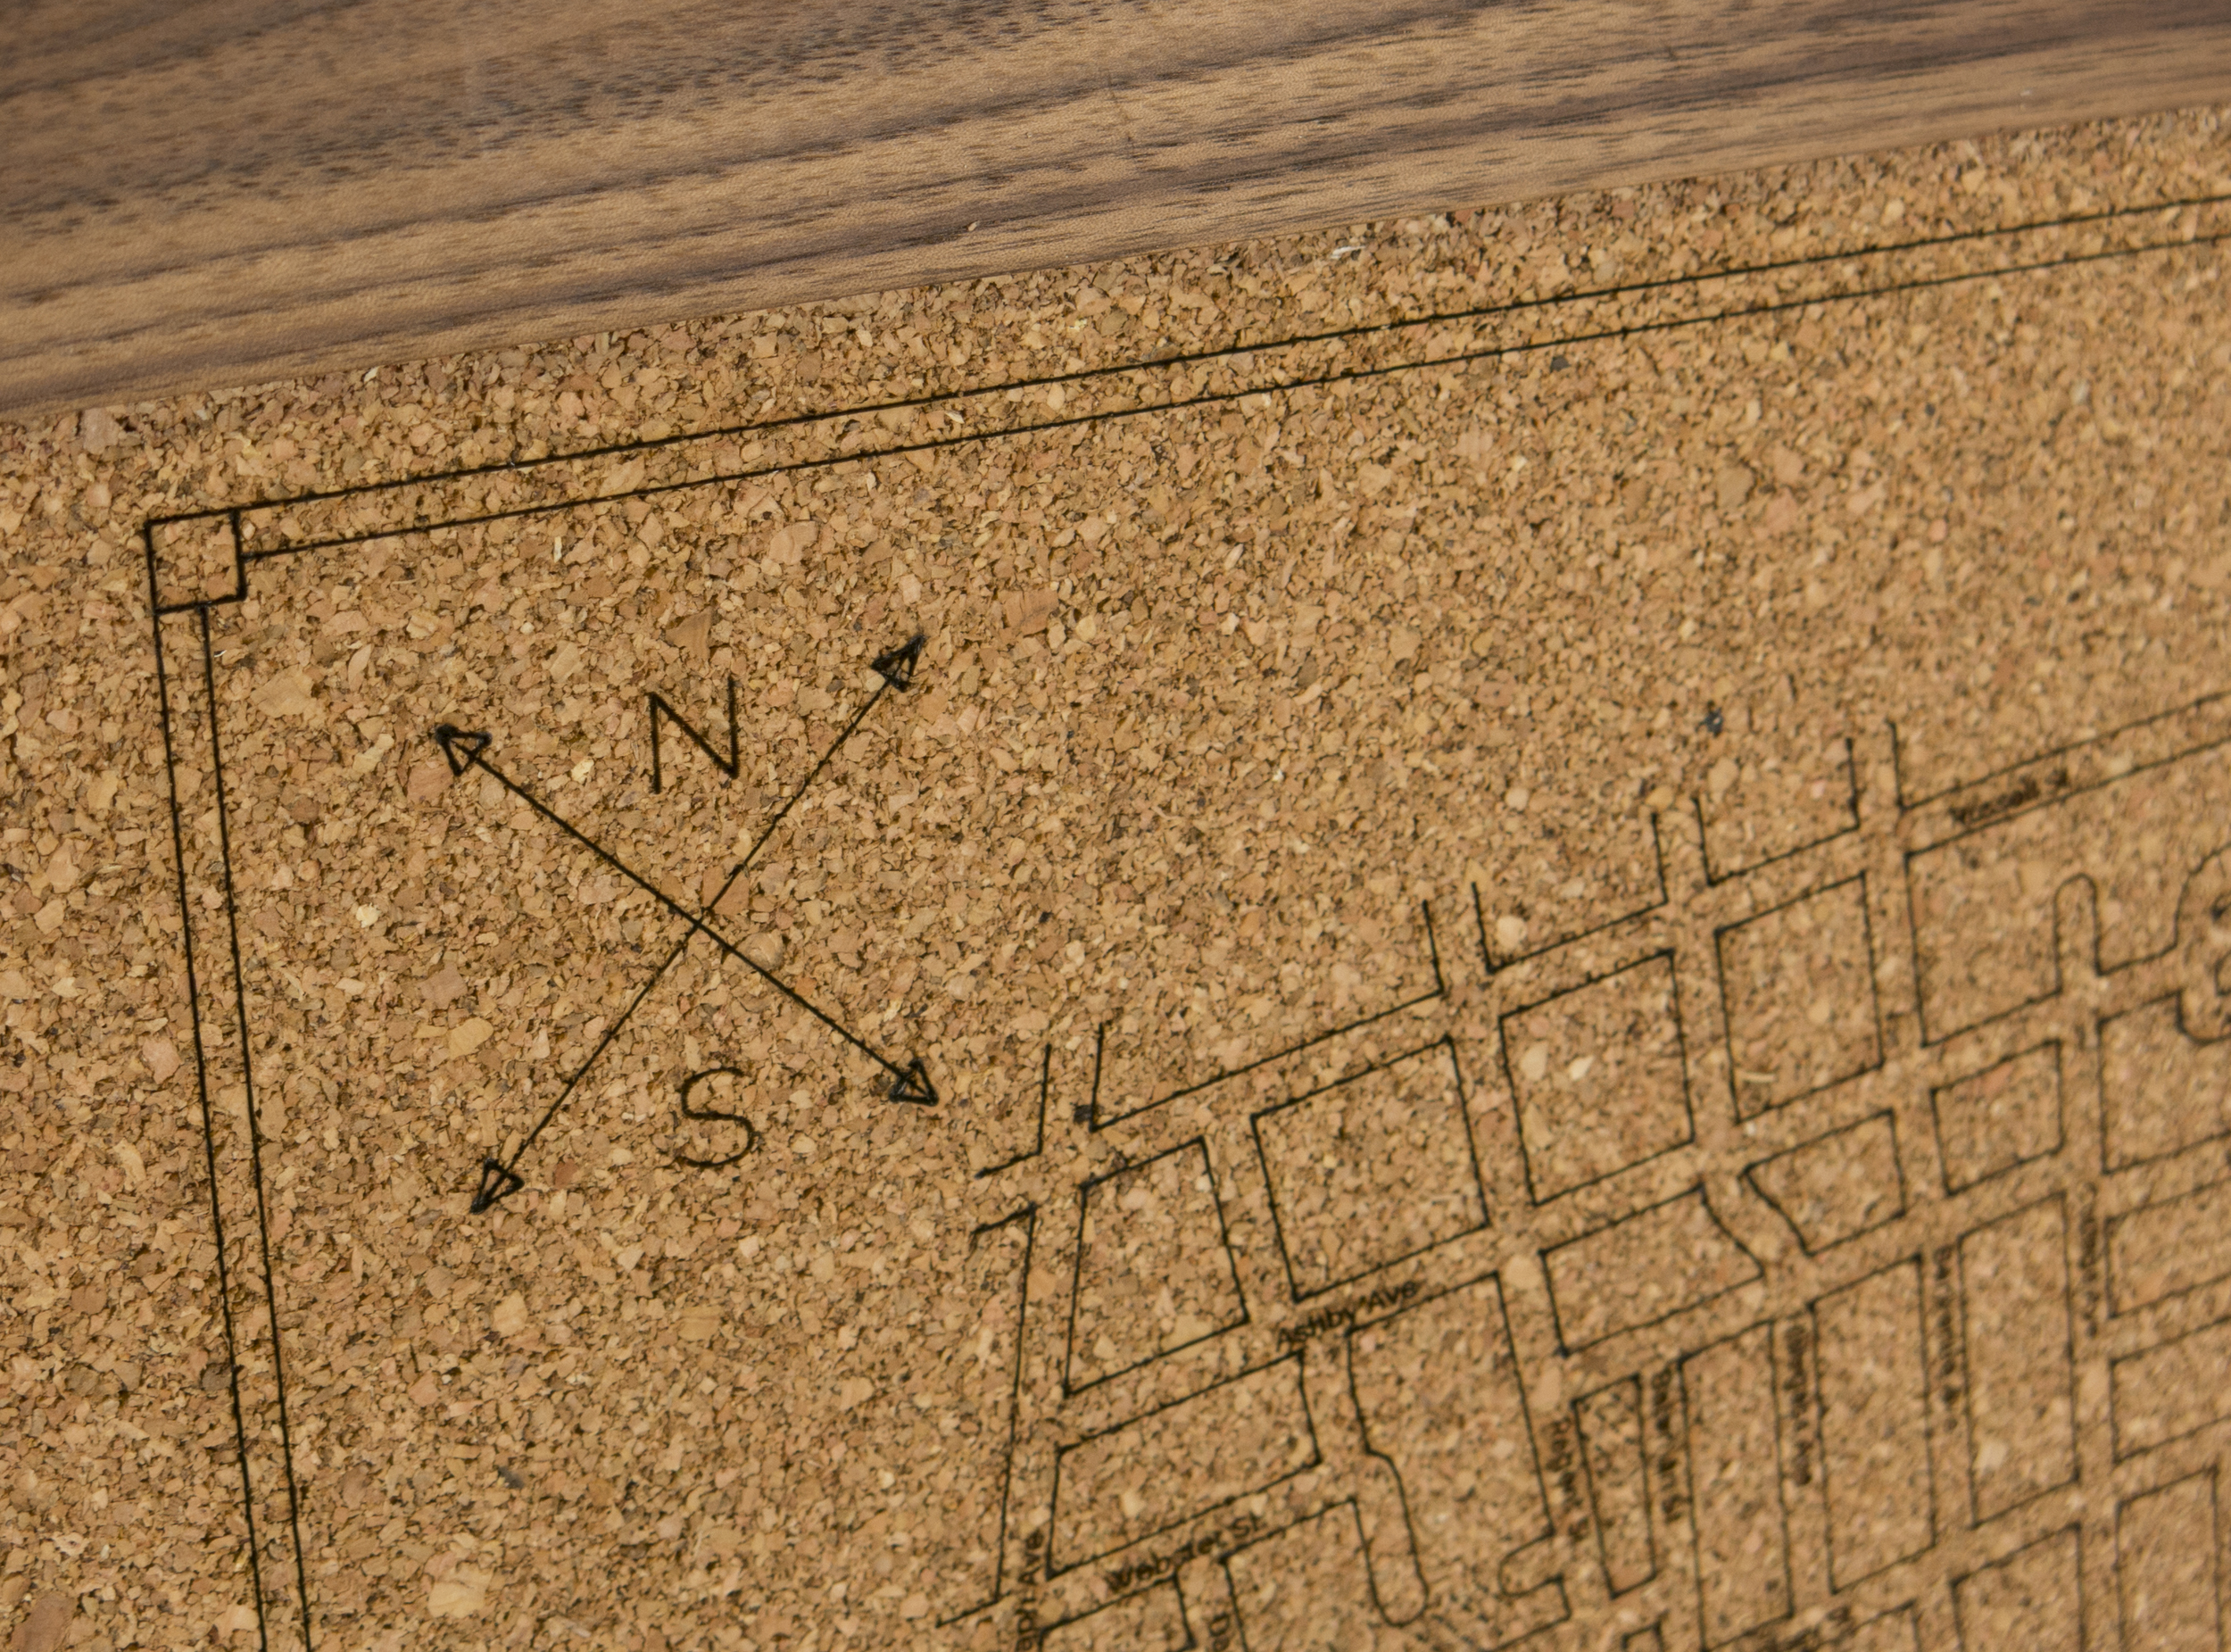 Cork map closeup